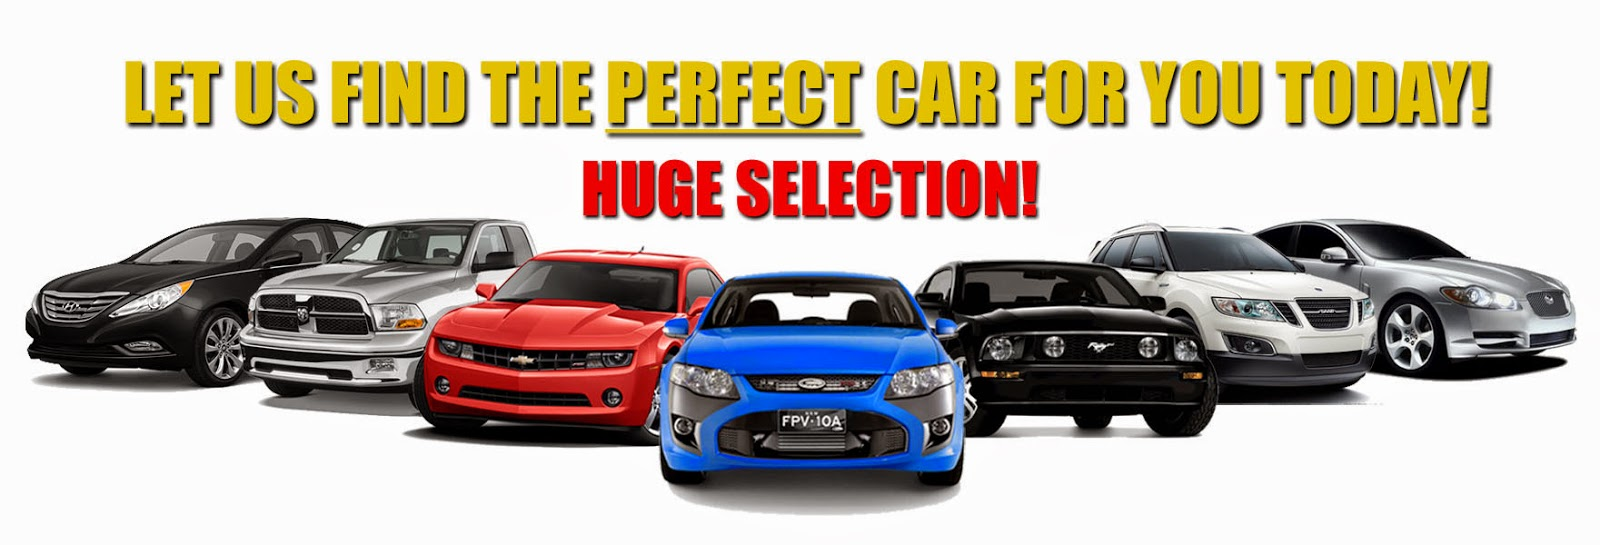 Used Car Dealerships In Columbia Sc >> 10 Best Columbia Car Dealerships For Pre Owned Vehicles